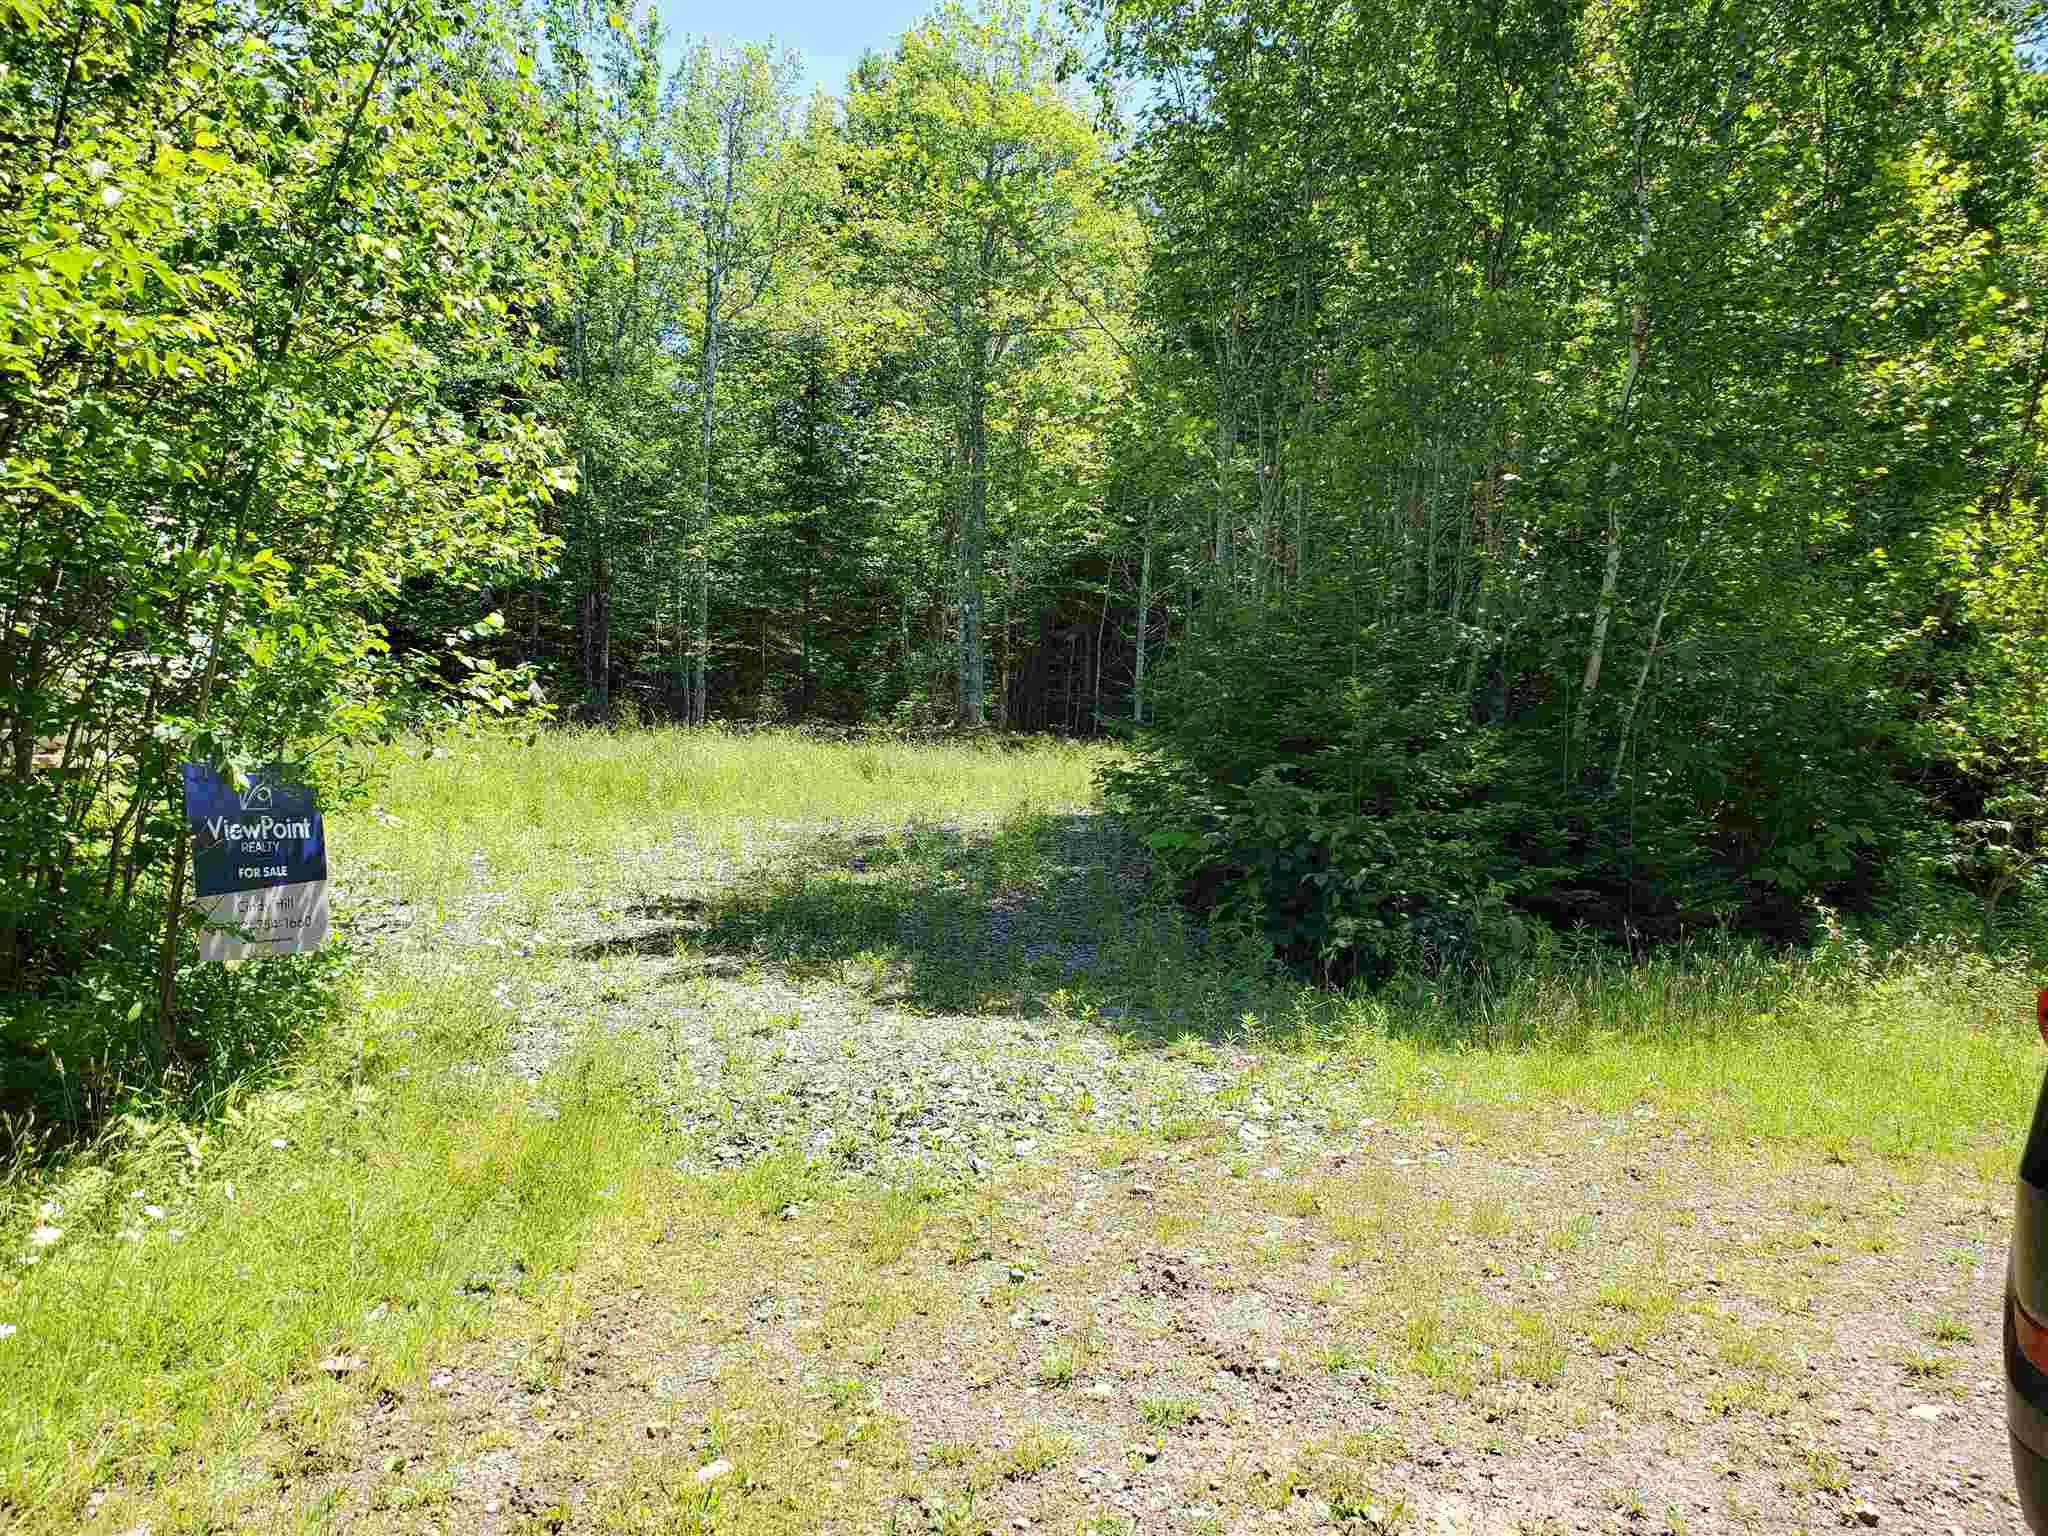 Main Photo: 8 Shady Lane in Loch Broom: 108-Rural Pictou County Vacant Land for sale (Northern Region)  : MLS®# 202117520